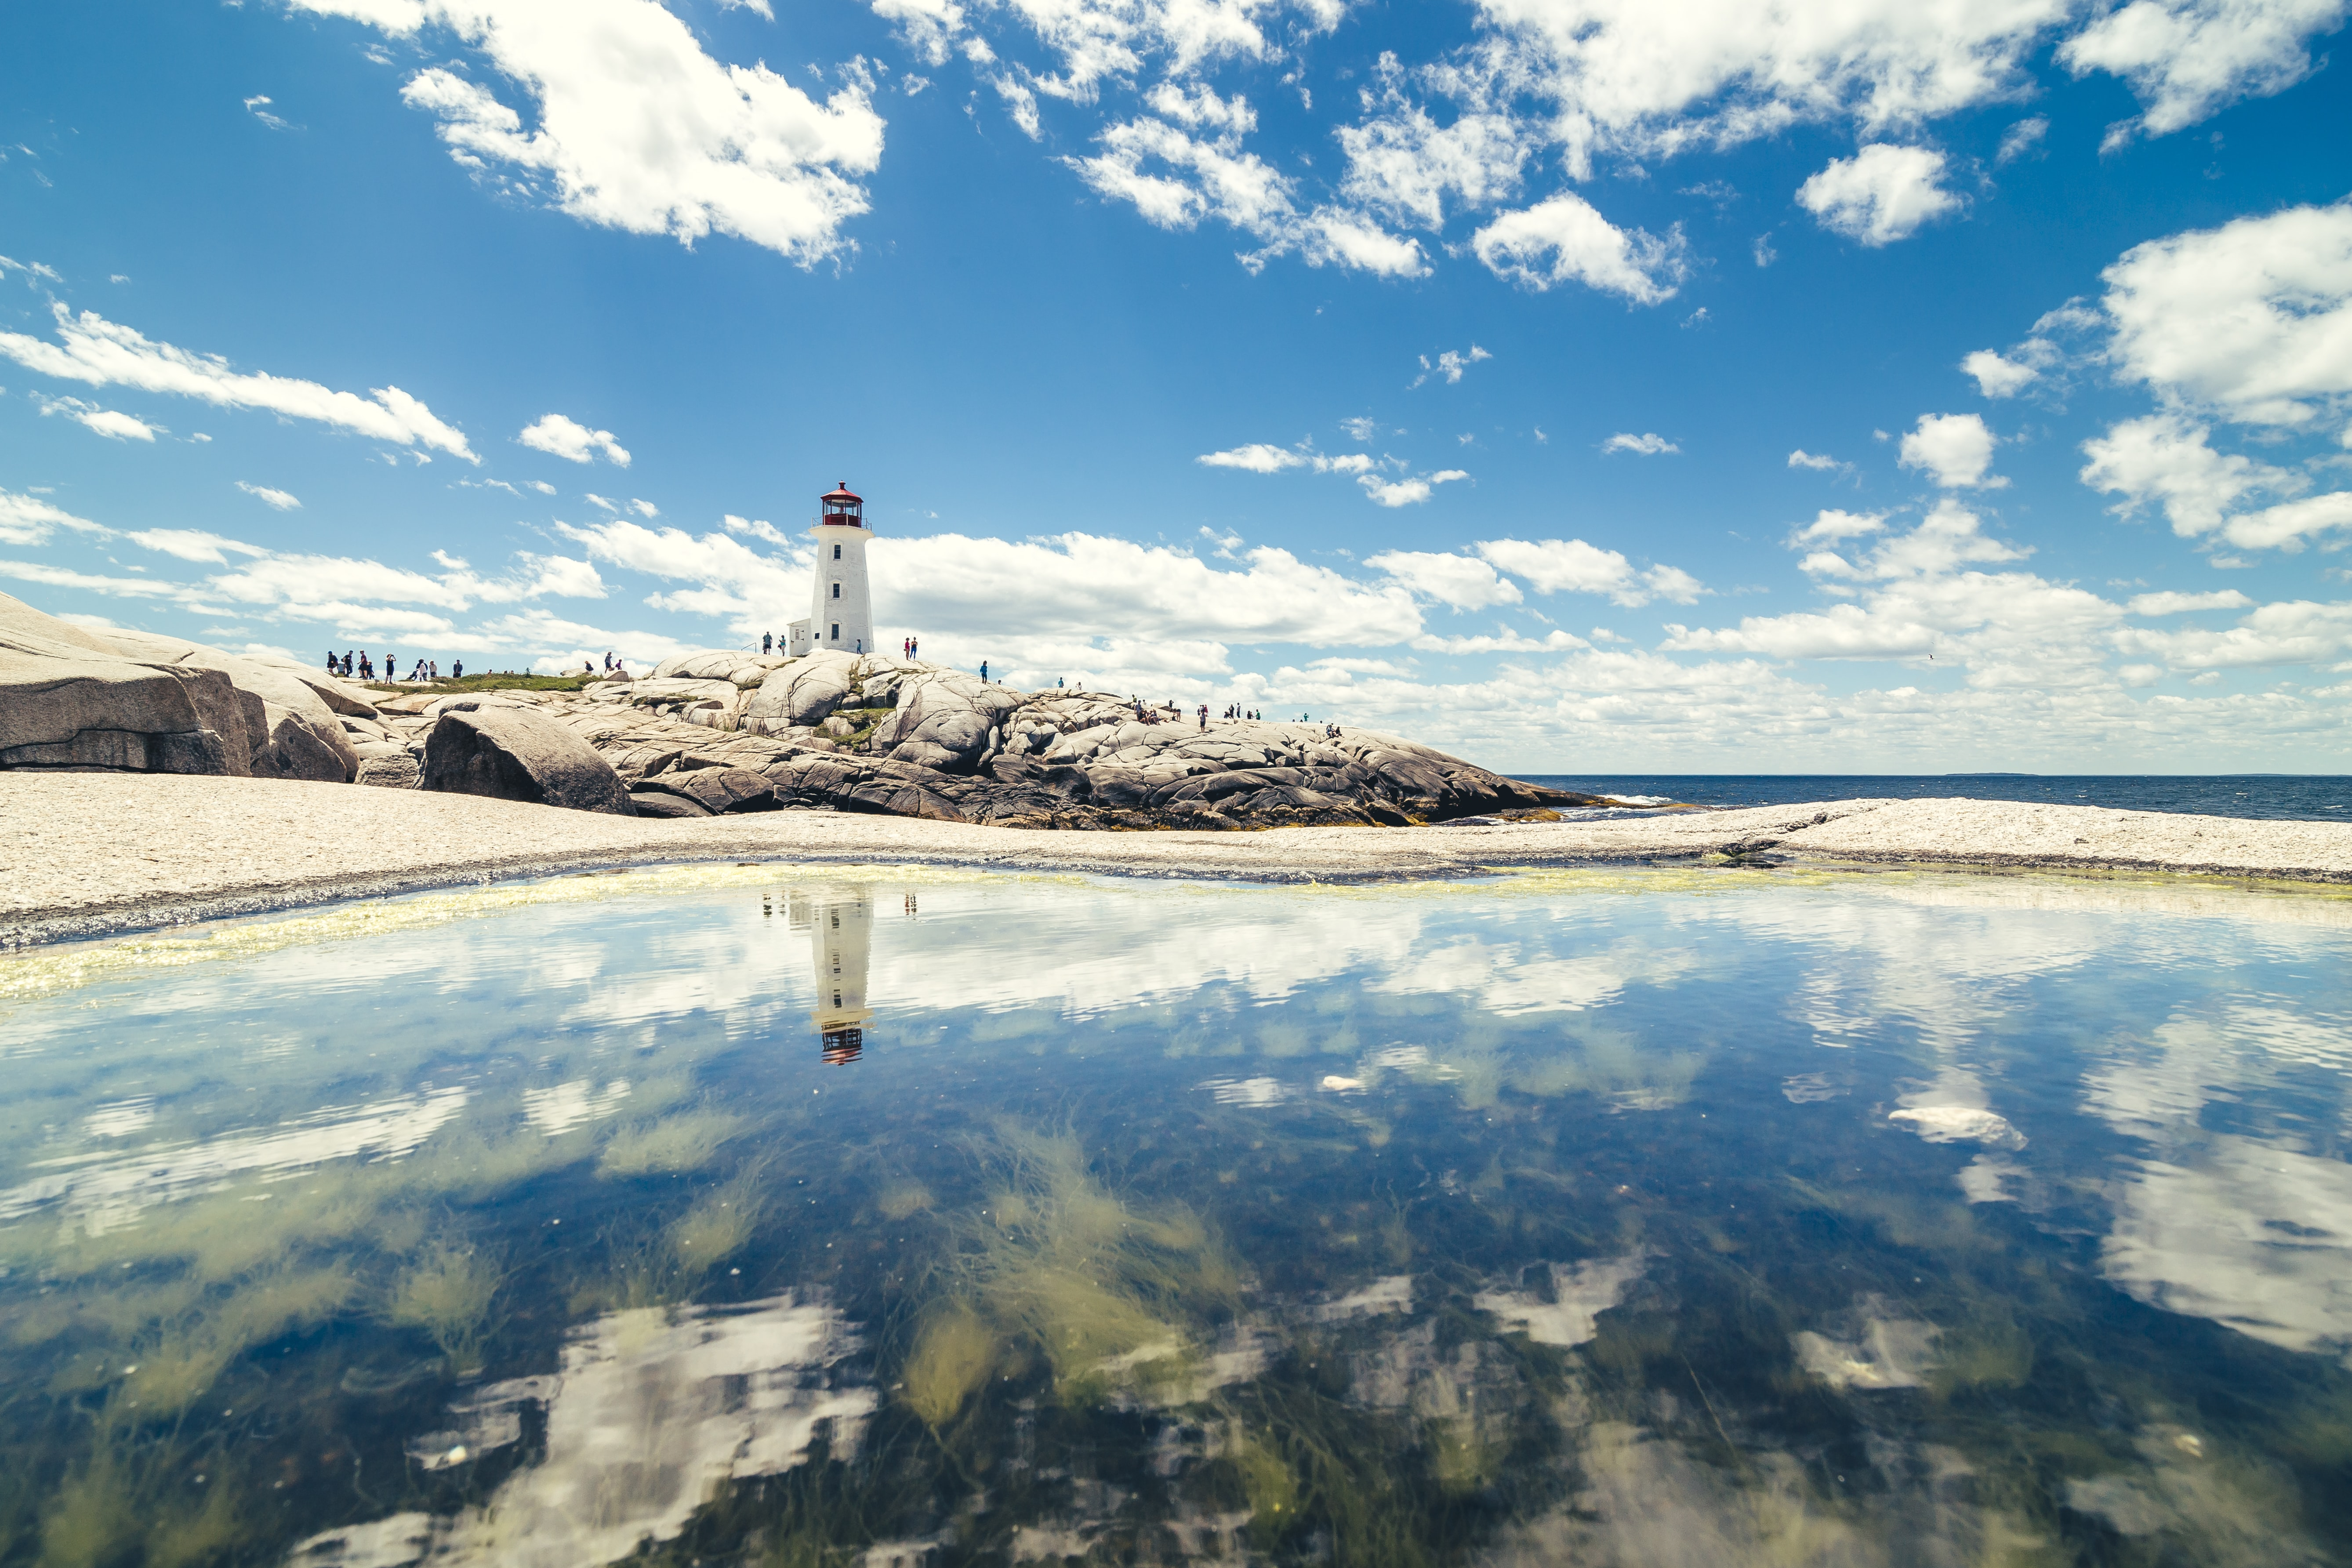 lighthouse tower near calm water under white clouds and blue sky